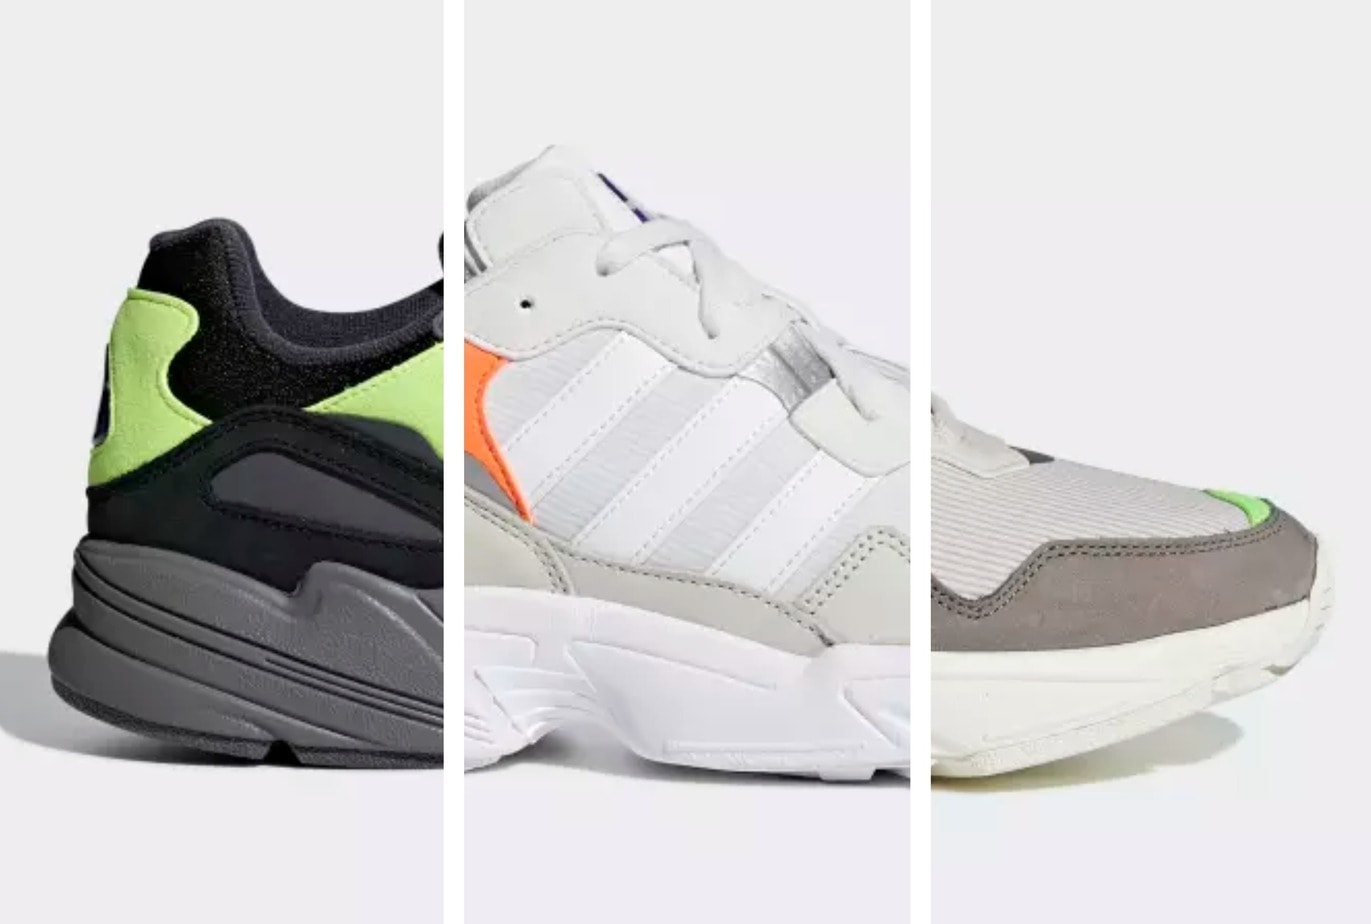 promo code 1e6ed 7176a The adidas Yung-1 has launched a slew of new silhouettes in the Originals   arsenal. The latest to enter the ring is a takedown of the original titled  the ...